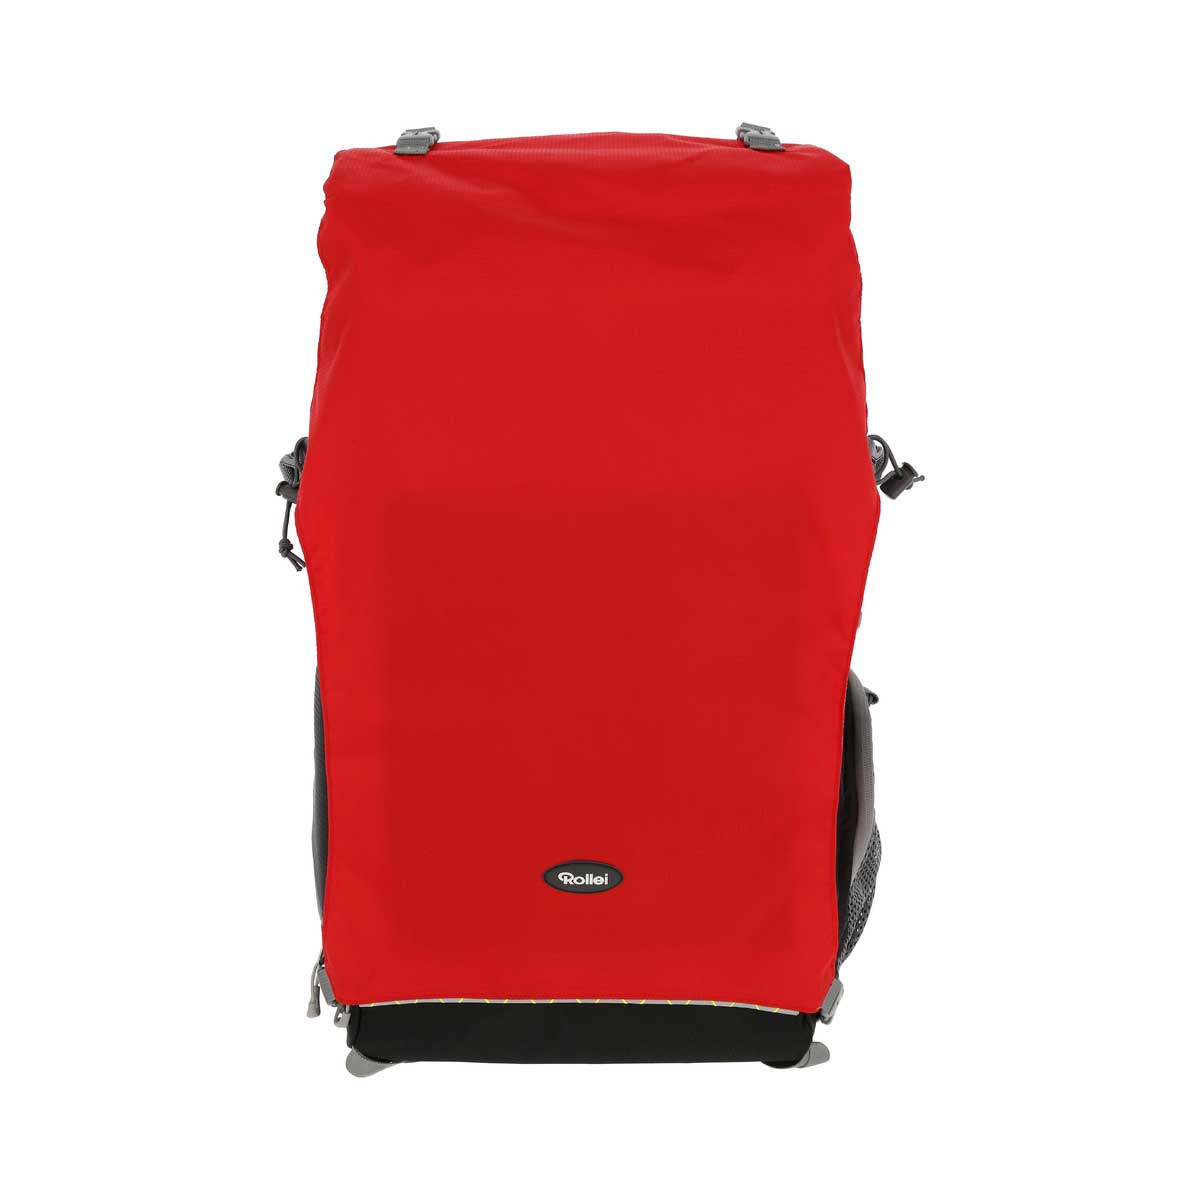 Rollei Traveler Backpack Canyon XL 50L Sunset Black/Red